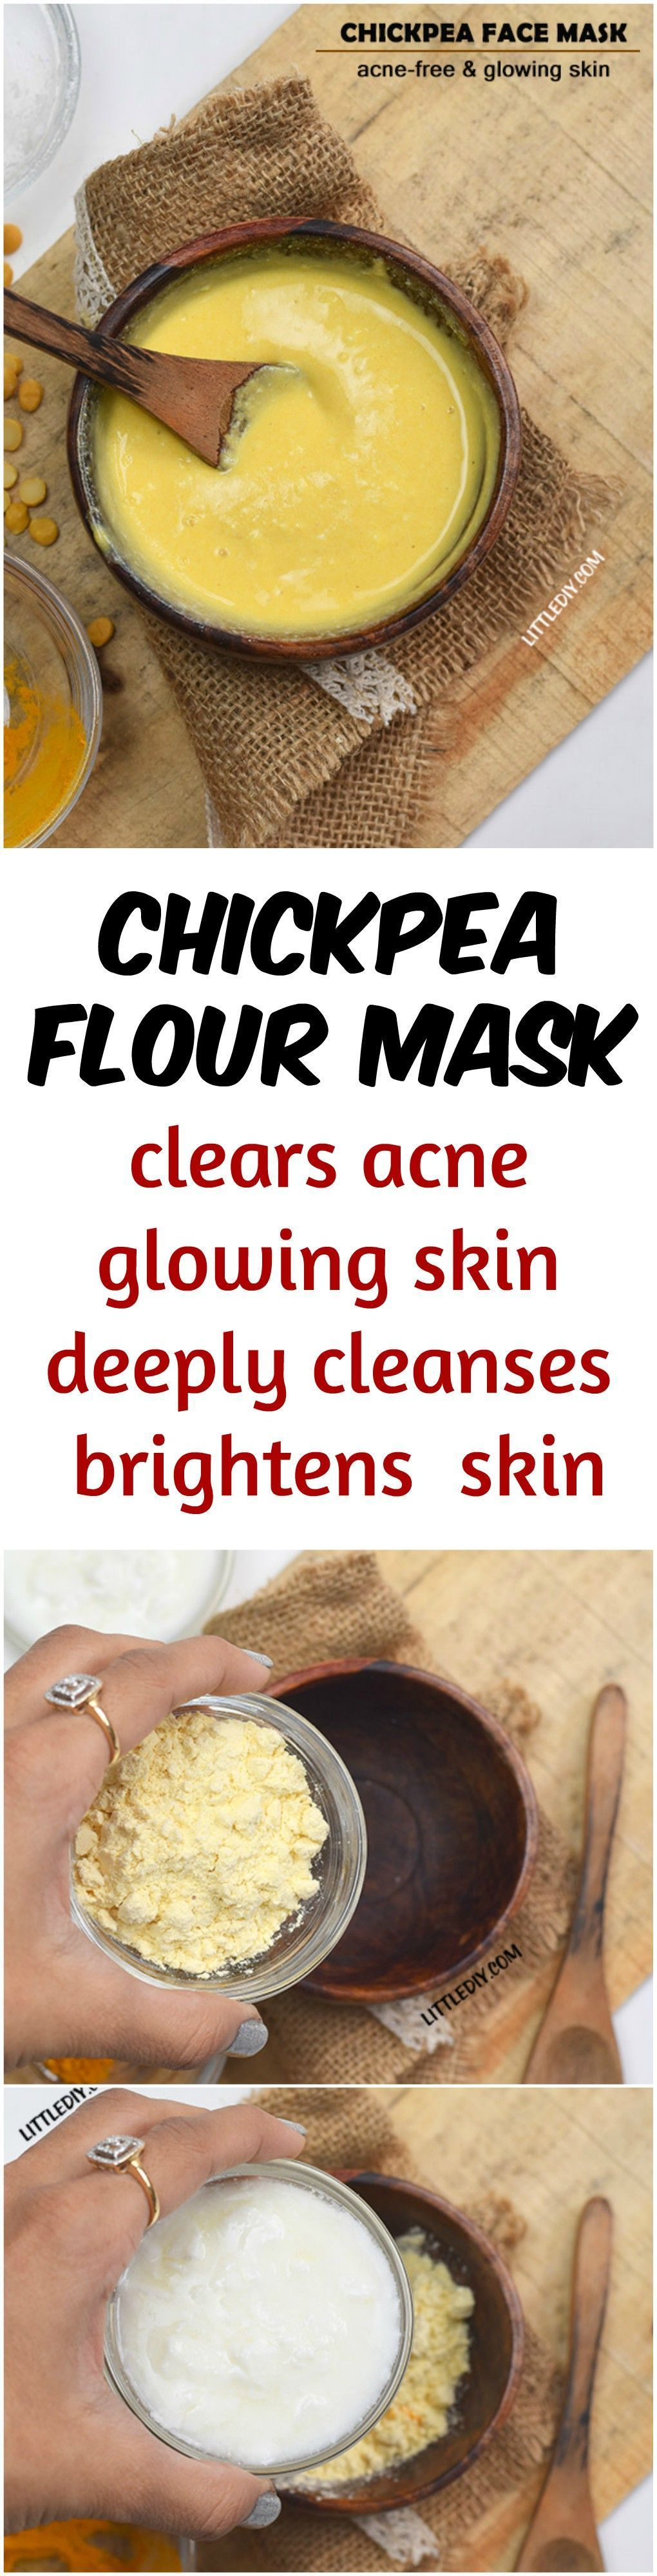 Chickpea flour mask for acne free glowing skin Homemade